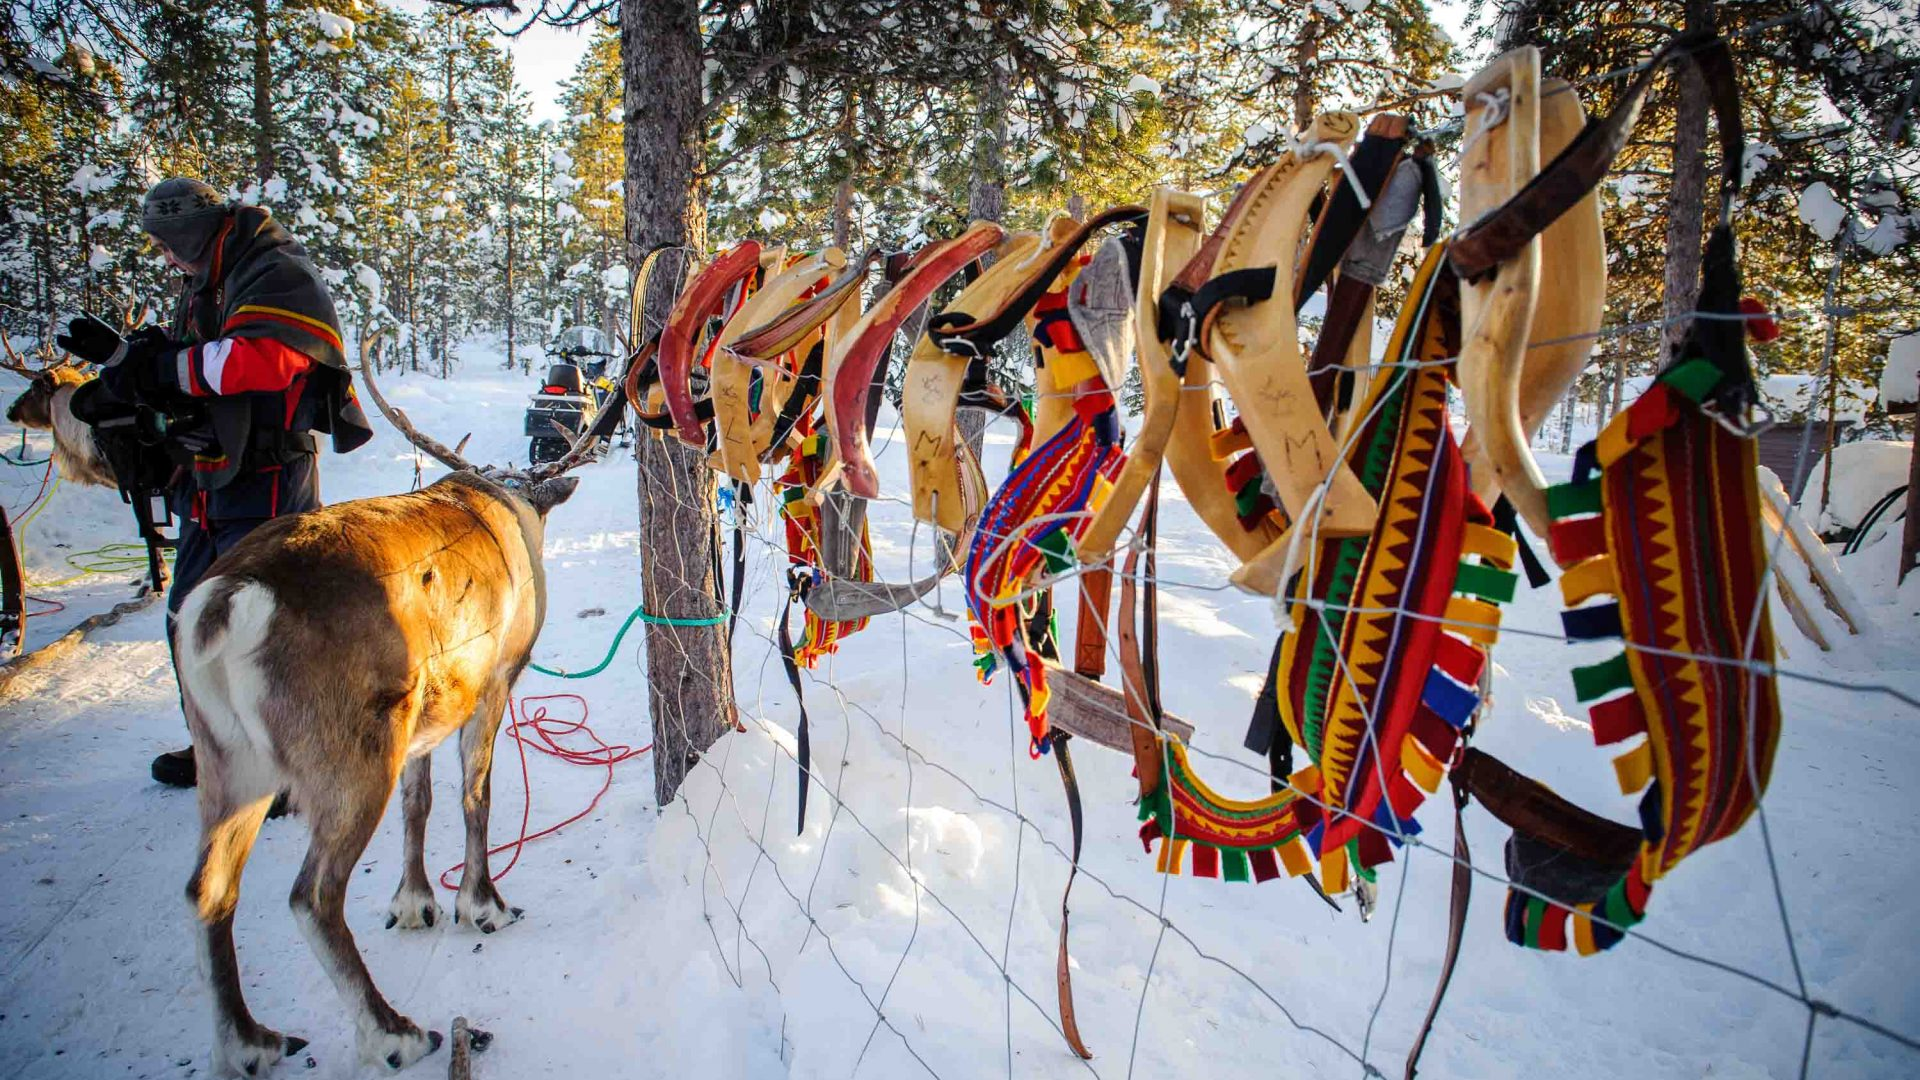 A reindeer stands next to the saddles used with sleds in the North of Sweden. Males, which are typically stronger, are most frequently used to pull sleds.